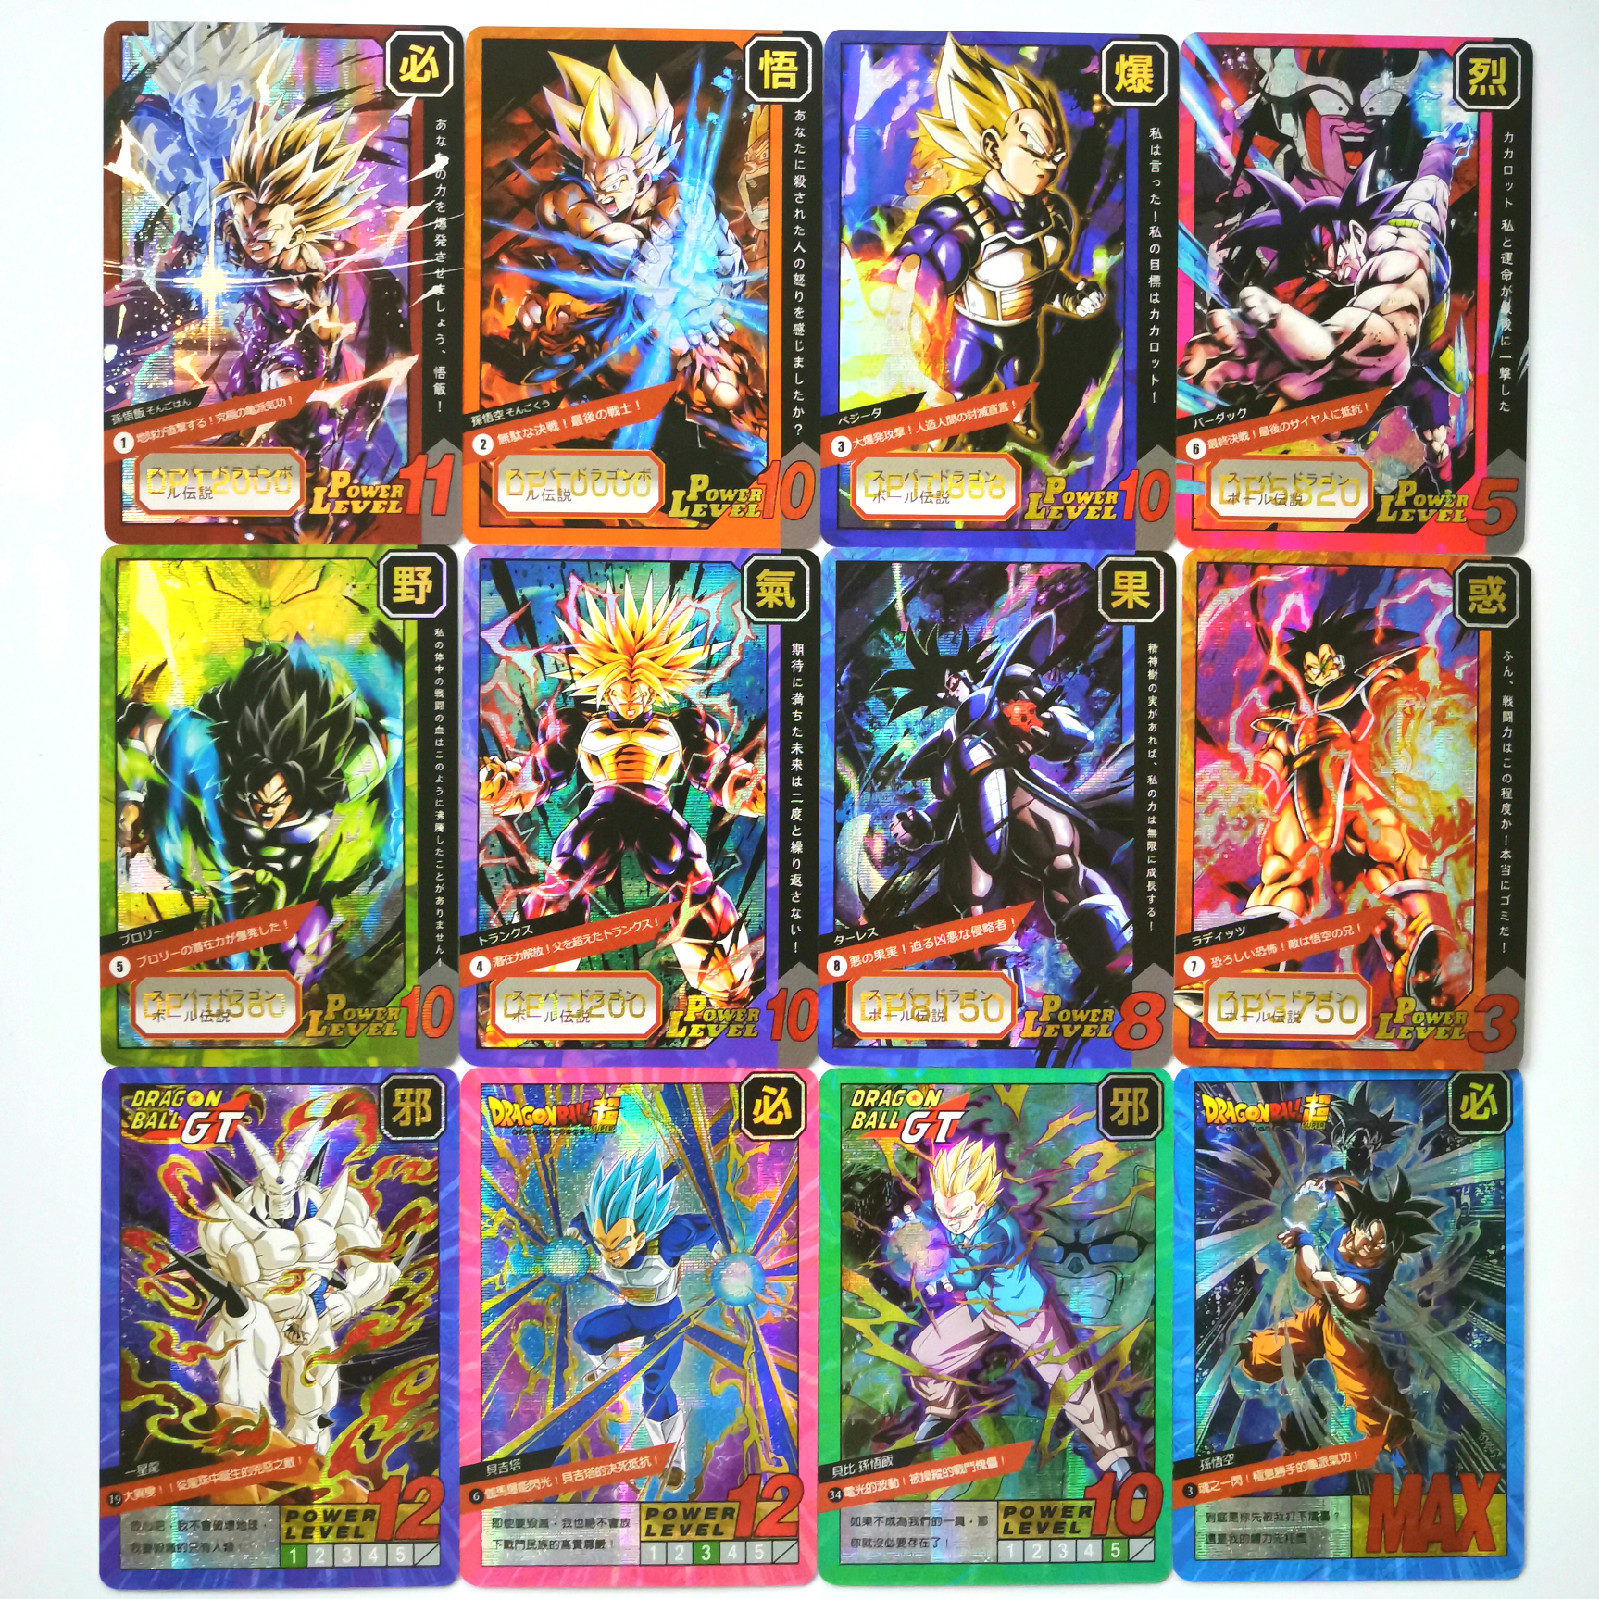 55pcs/set Super Dragon Ball Z 9 In 1 Heroes Battle Card Ultra Instinct Goku Vegeta Game Collection Anime Cards